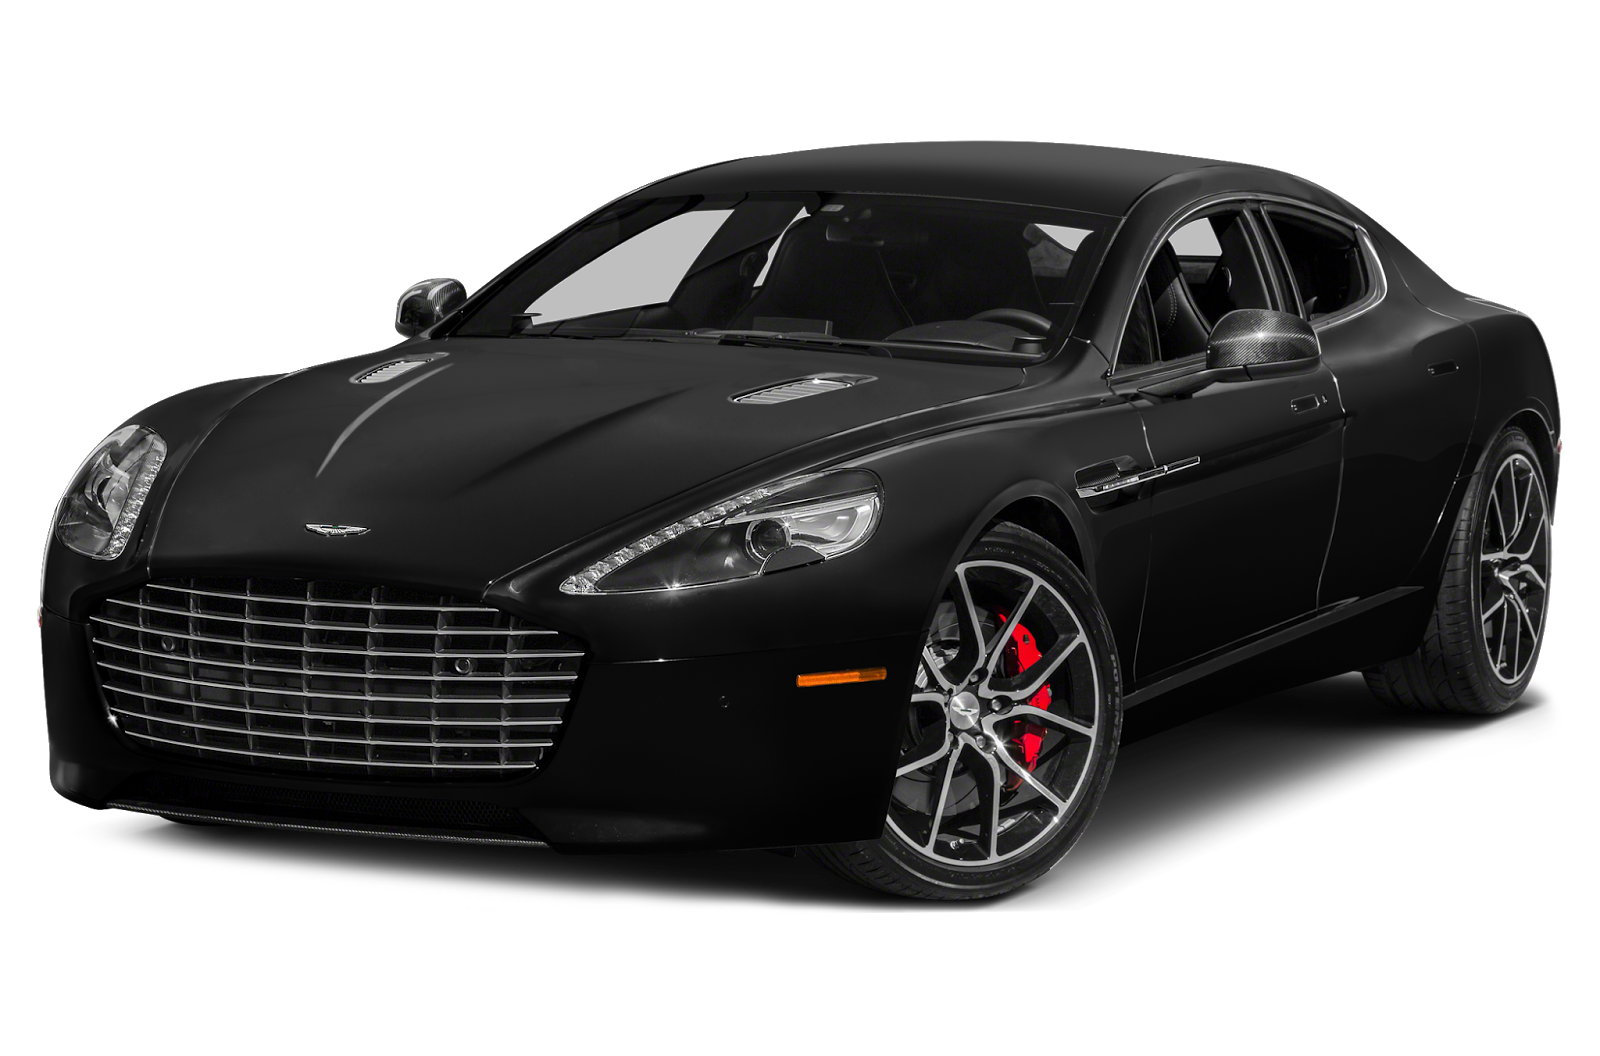 2015 Aston Martin Rapide S High Resolution Pictures